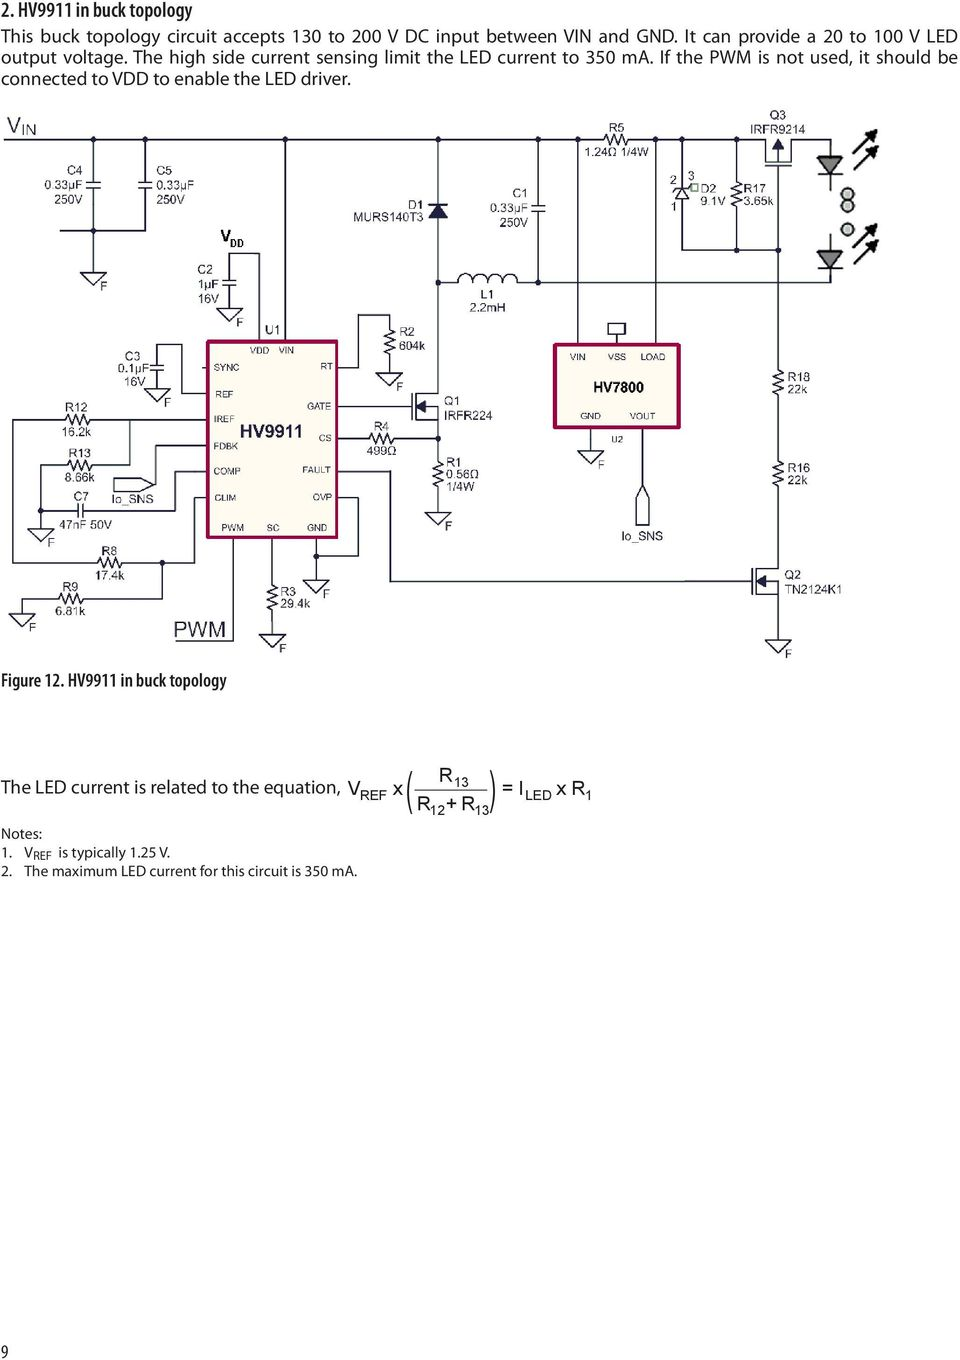 Application Note Pdf Low Drop Linear Led Driver If The Pwm Is Not Used It Should Be Connected To Vdd Enable